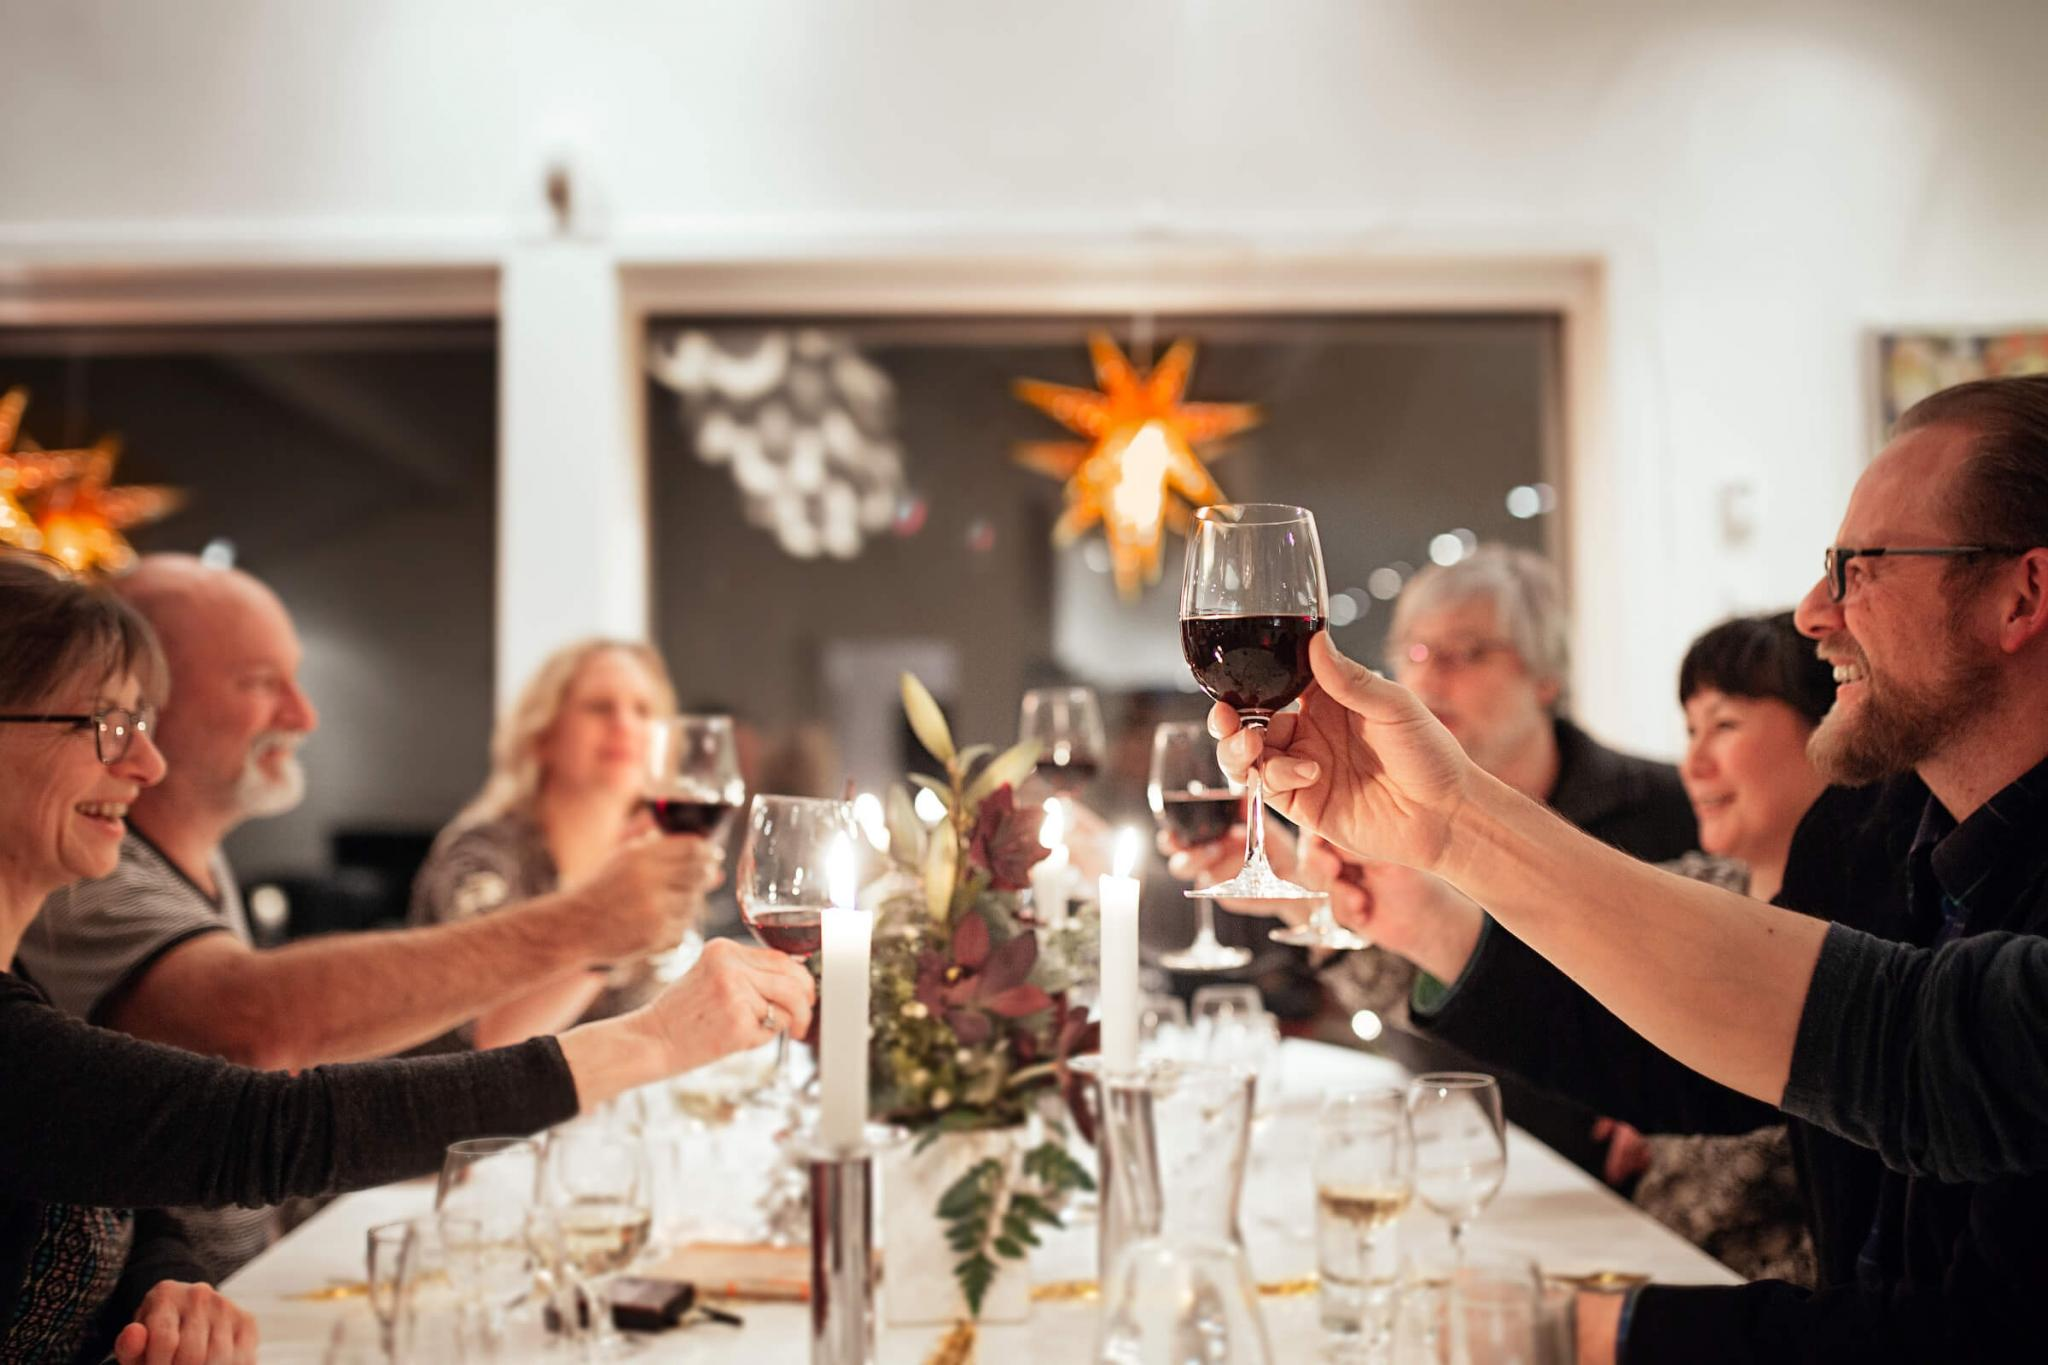 Locals and tourists sharing a toast during a christmas dinner in the Margrethe Suite in Nuuk in Greenland. Photo by Rebecca Gustafsson